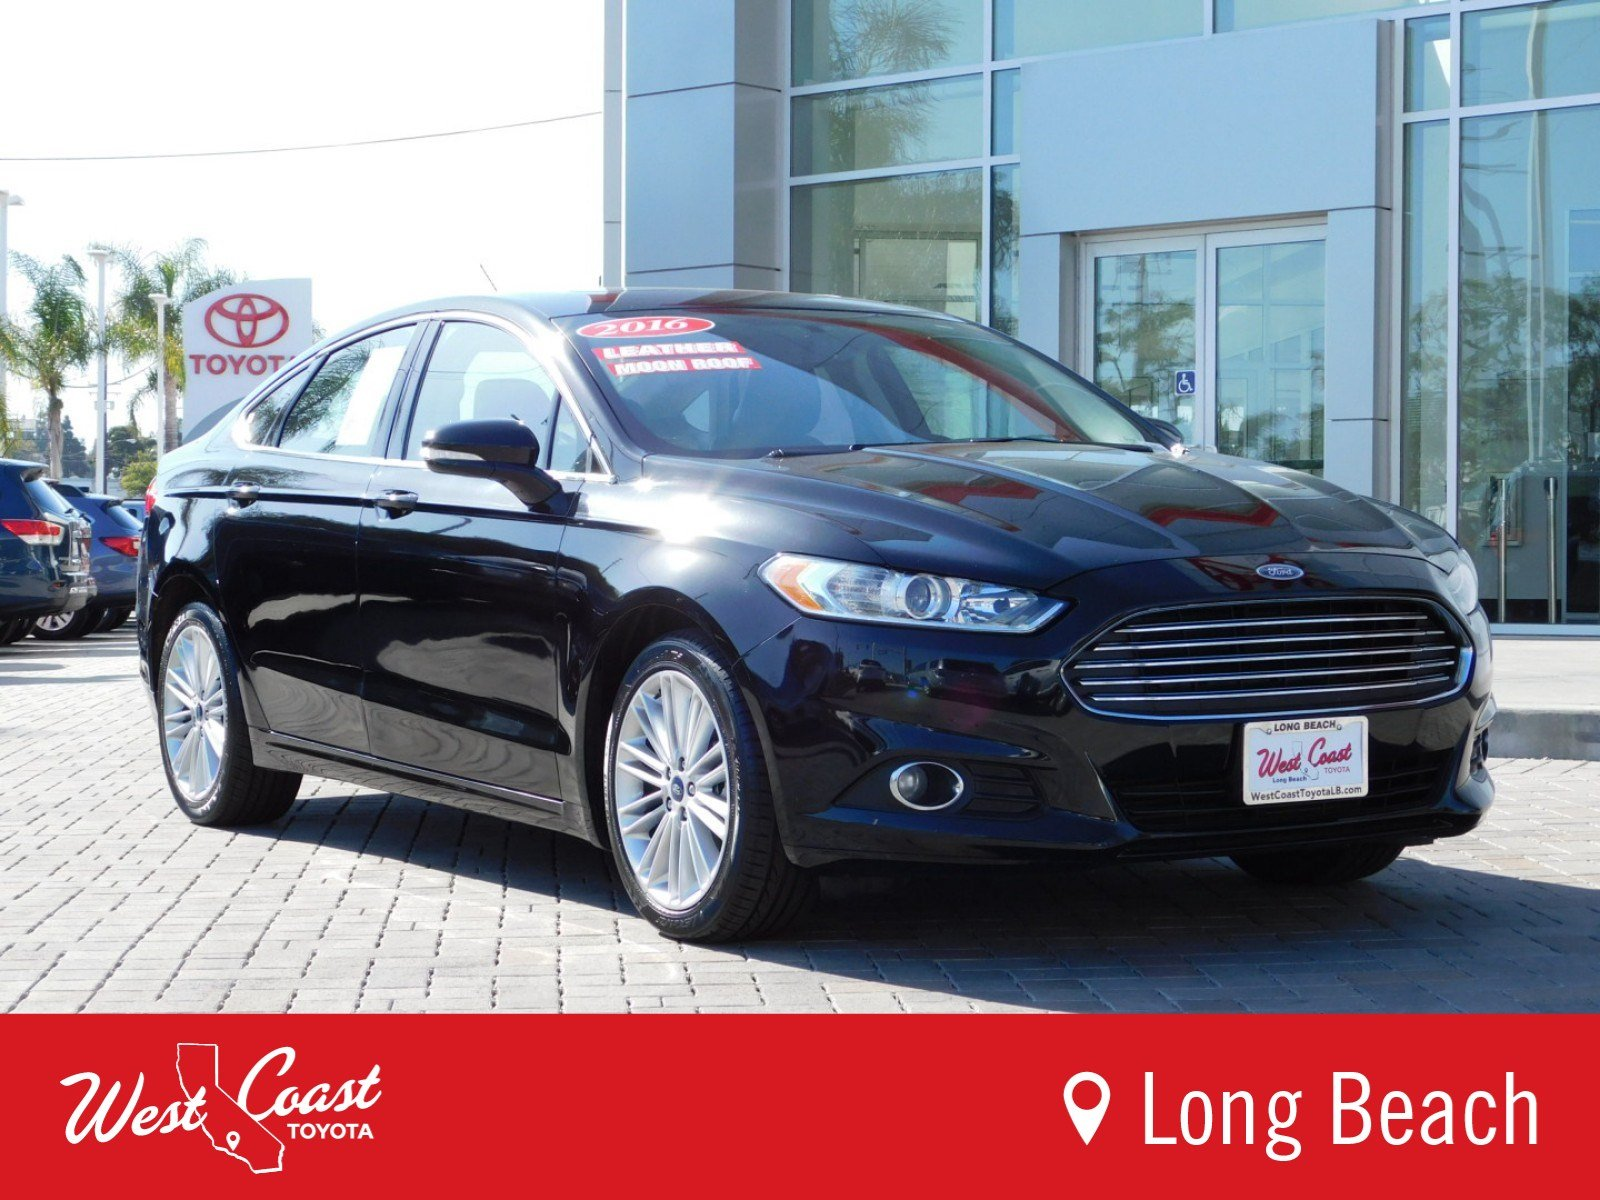 Pre Owned 2016 Ford Fusion SE 4dr Car in Long Beach R